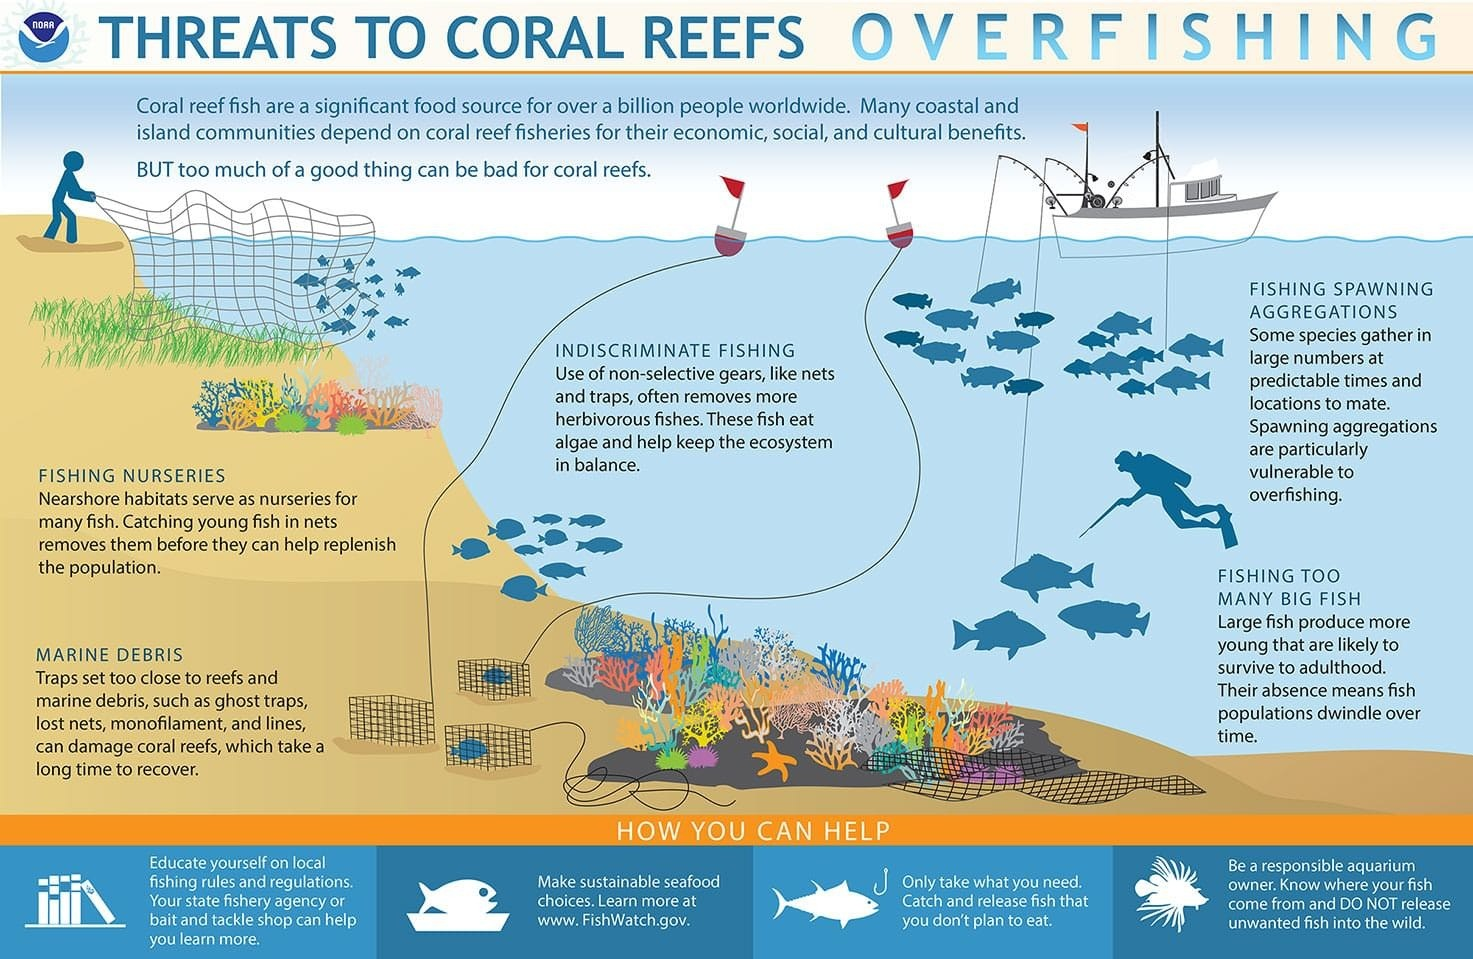 a chart showing the threats to overfishing in coral reefs